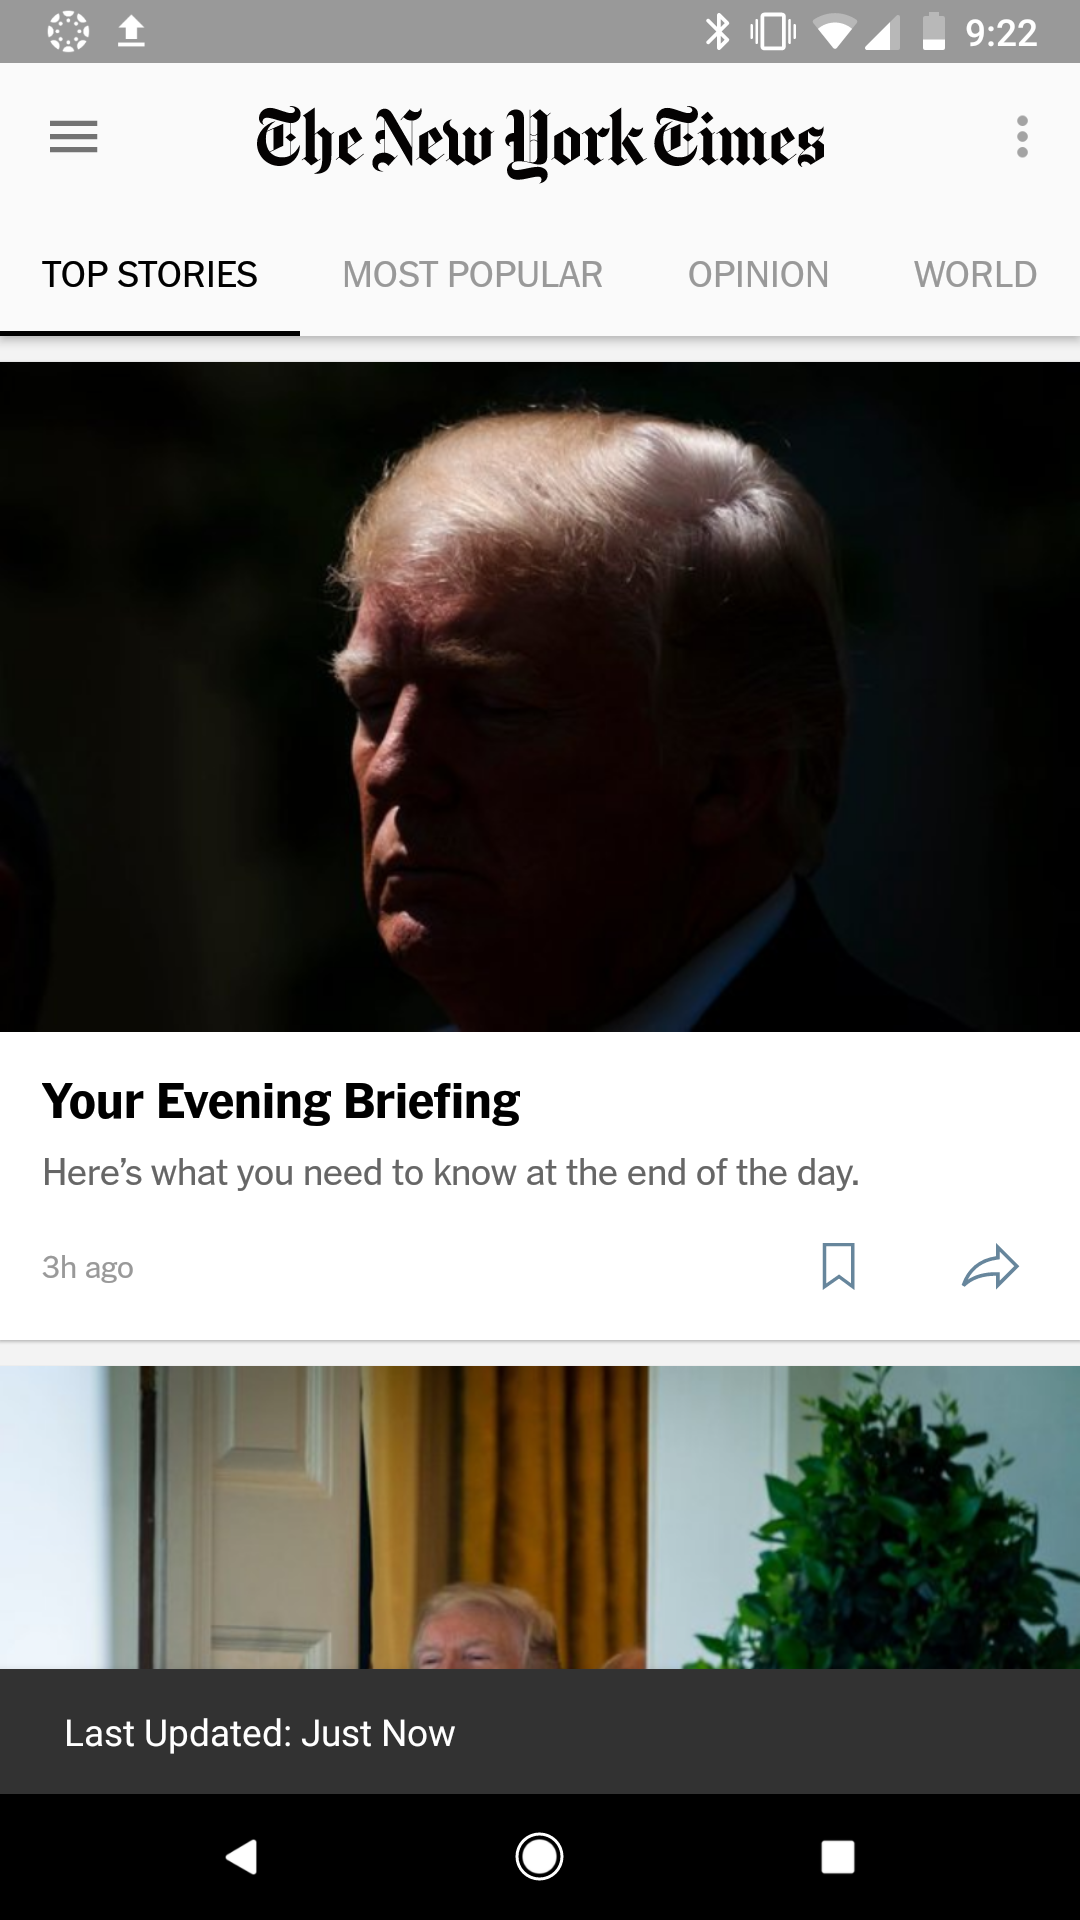 Nice to see daily brief